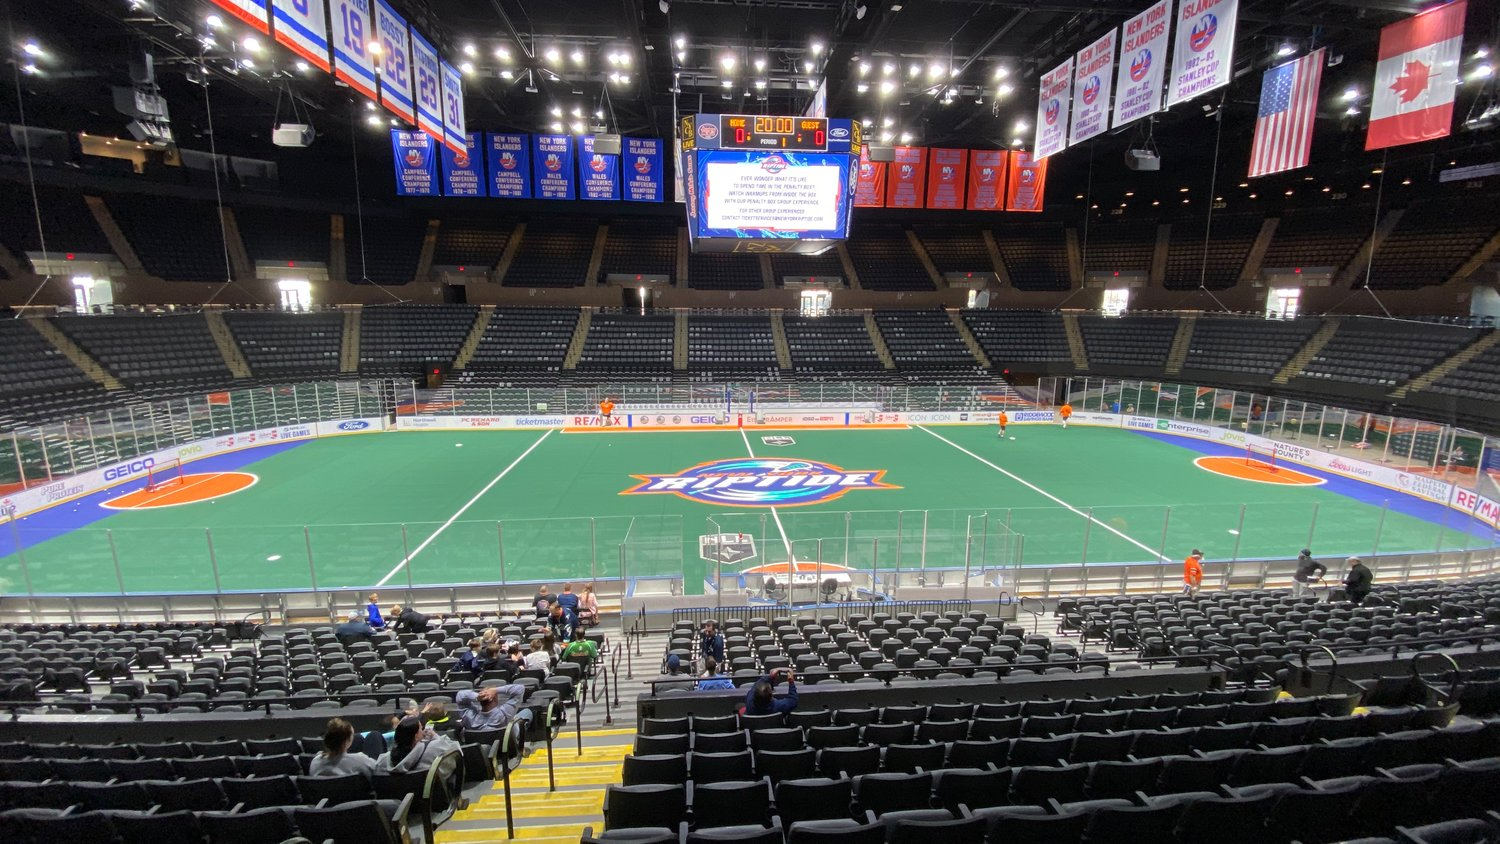 A look at NYCB Live's Nassau Coliseum as it hosts New York's newest pro sports team, the NLL's Riptide, for an open practice on Nov. 2, 2019.